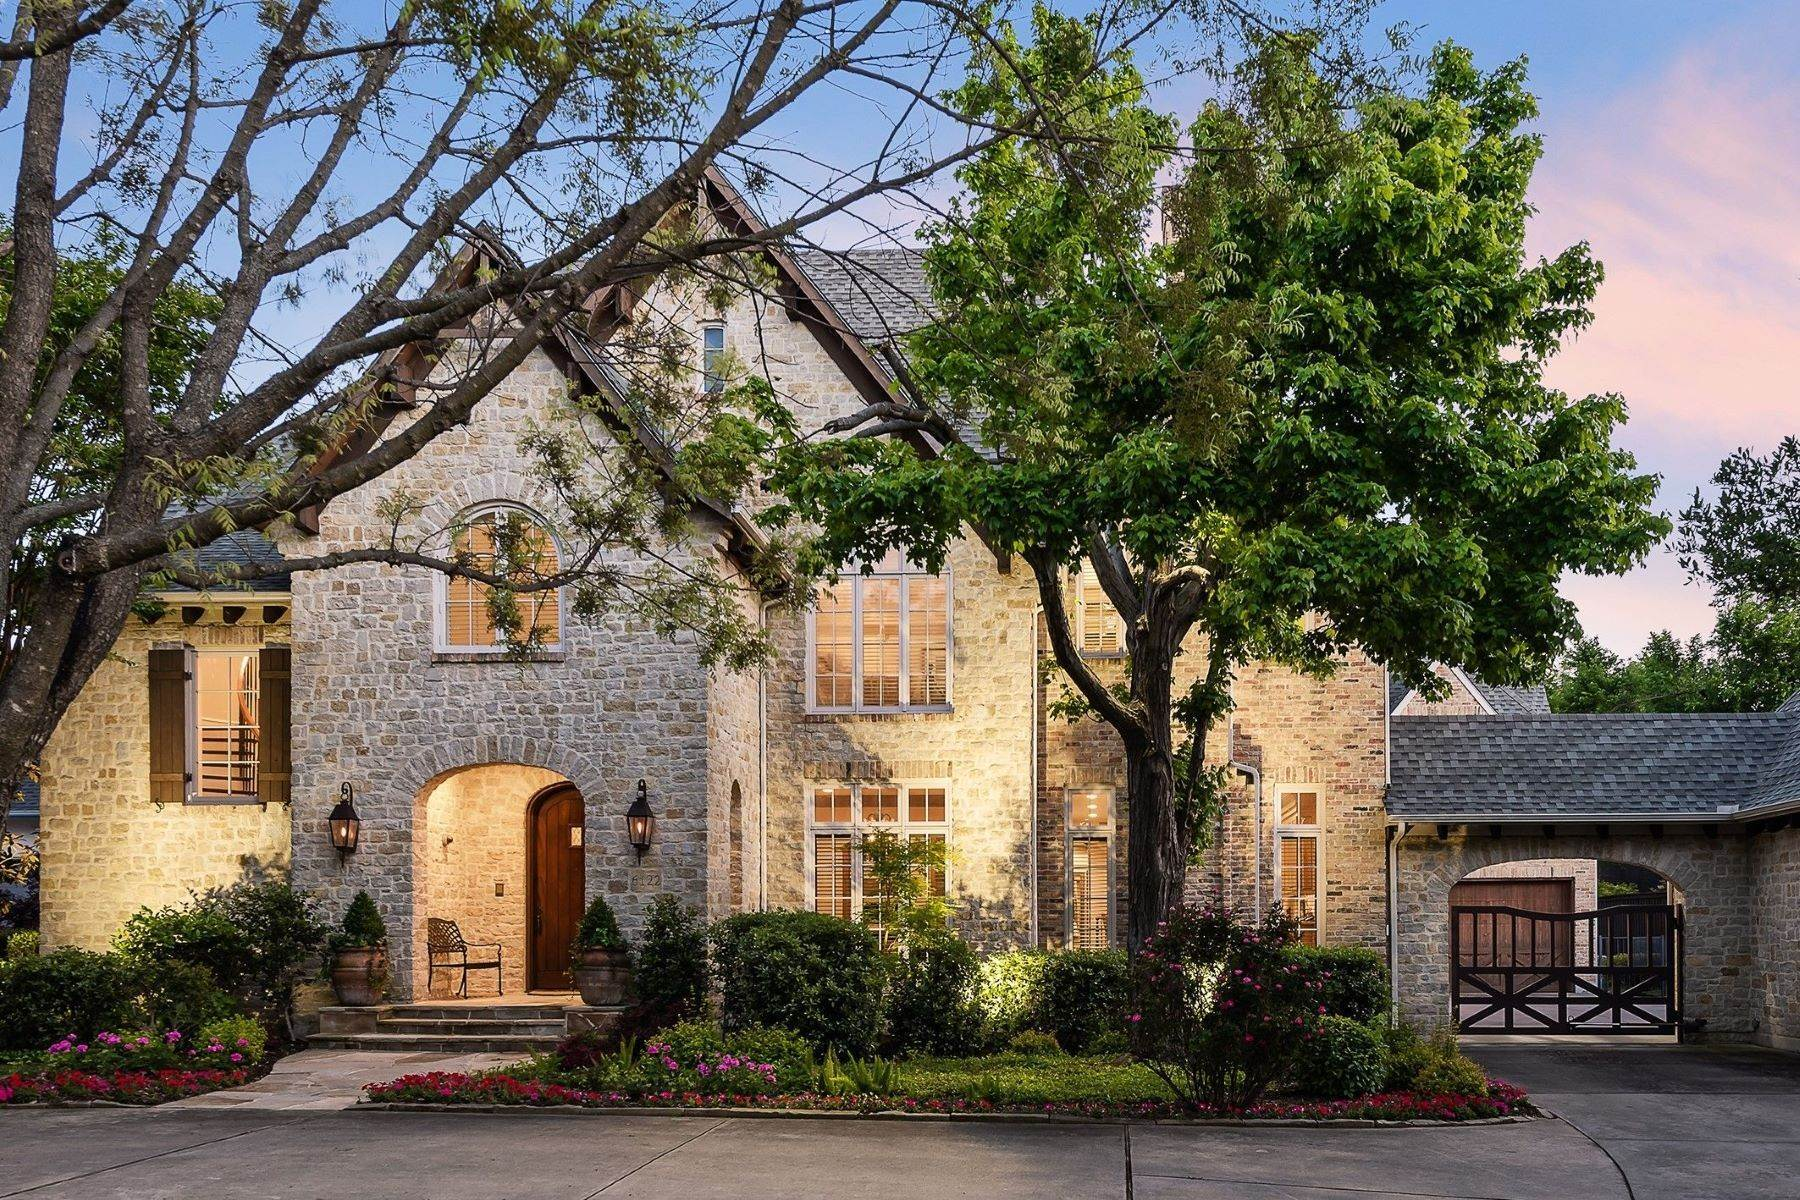 Single Family Homes for Sale at Storybook Preston Hollow Tudor 6122 Norway Road Dallas, Texas 75230 United States